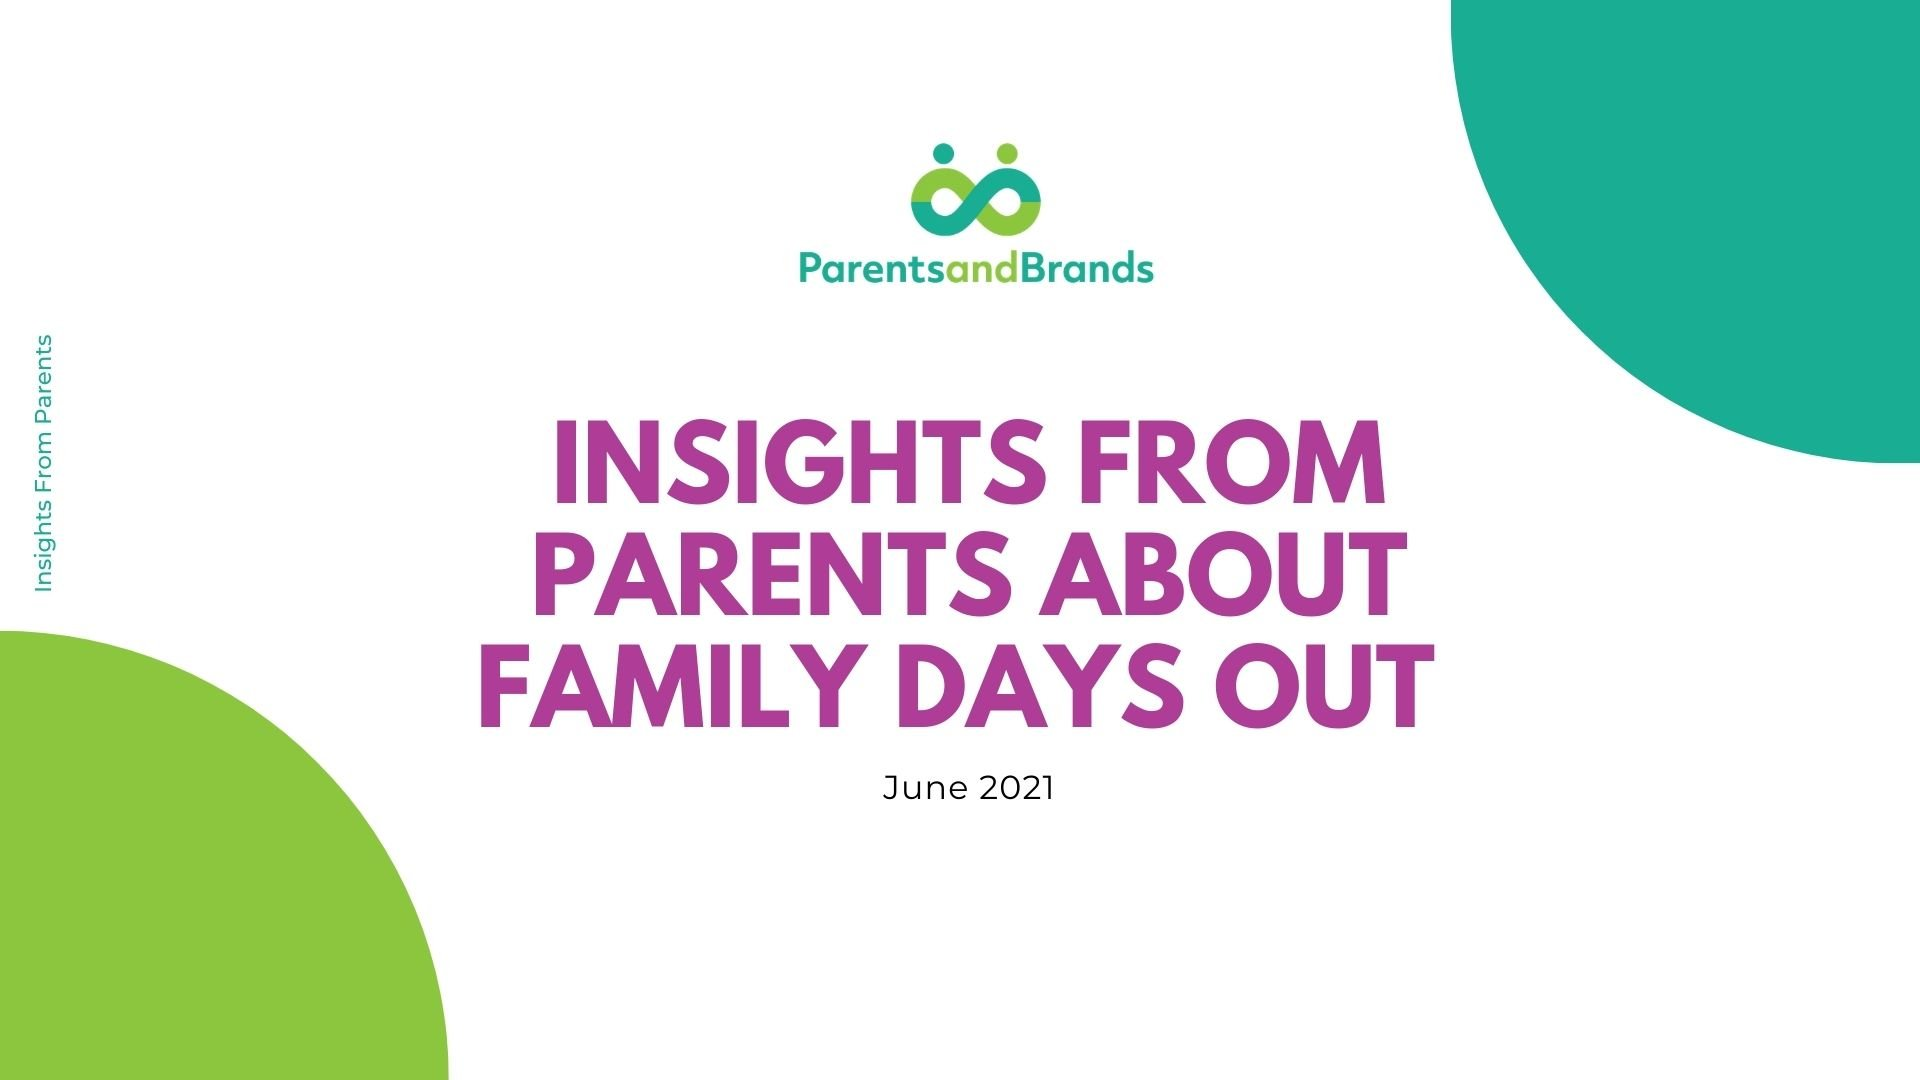 Insights about family days out